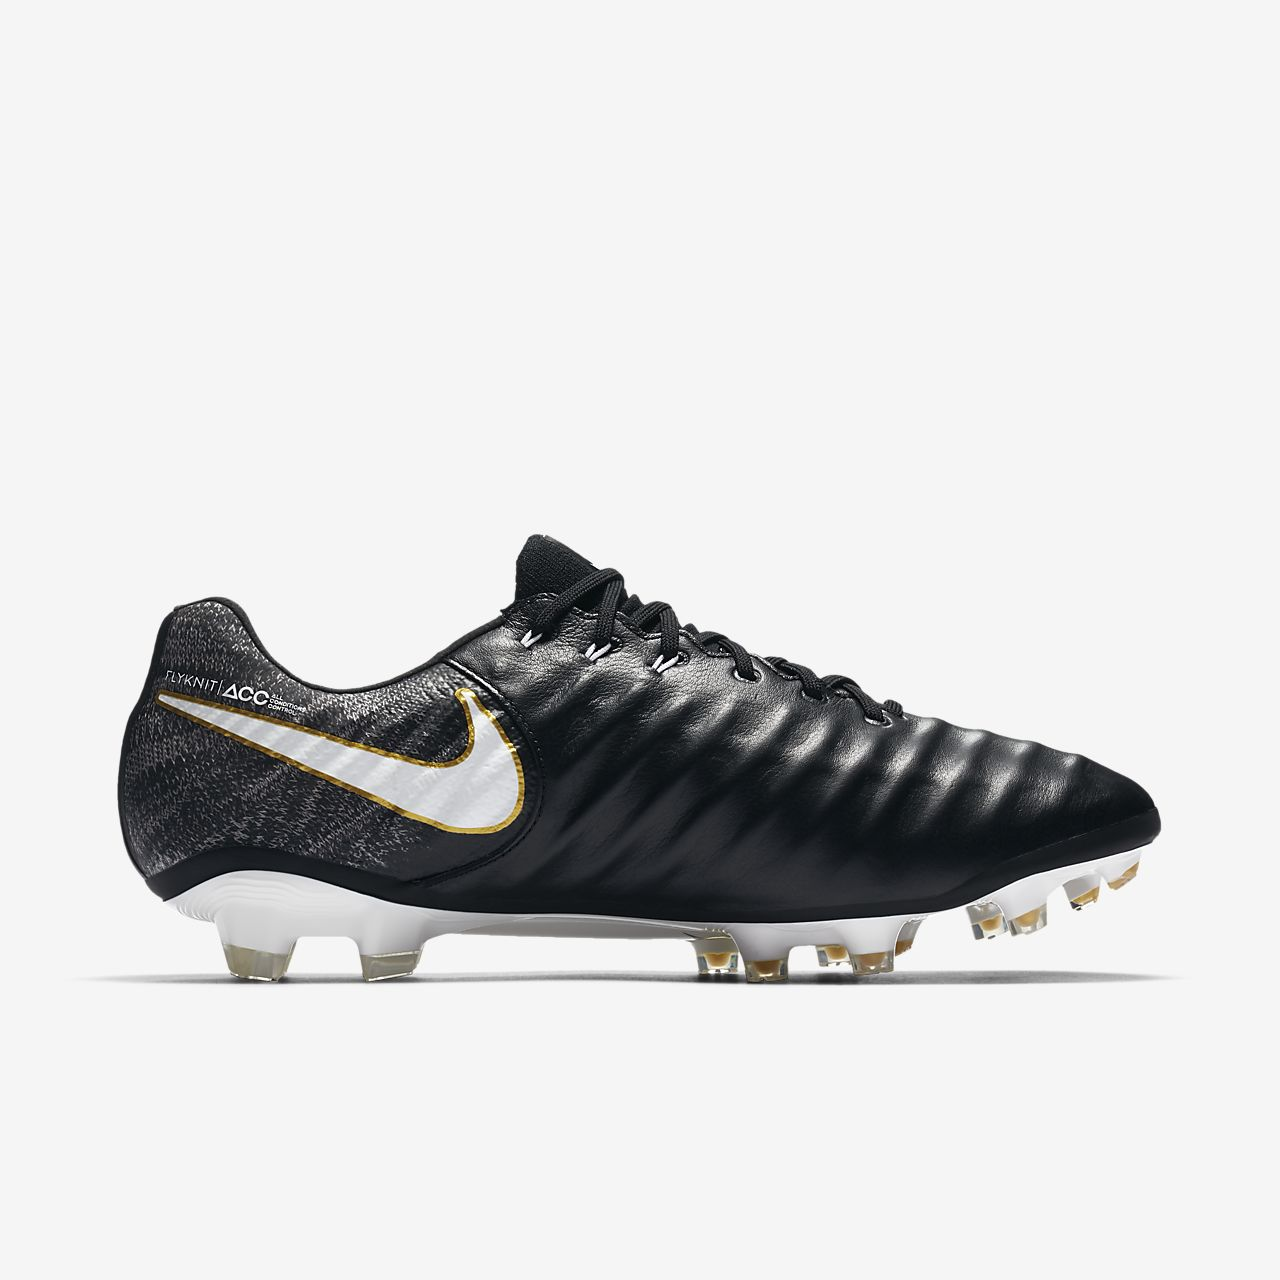 nike tiempo. nike tiempo legend vii firm-ground soccer cleat l